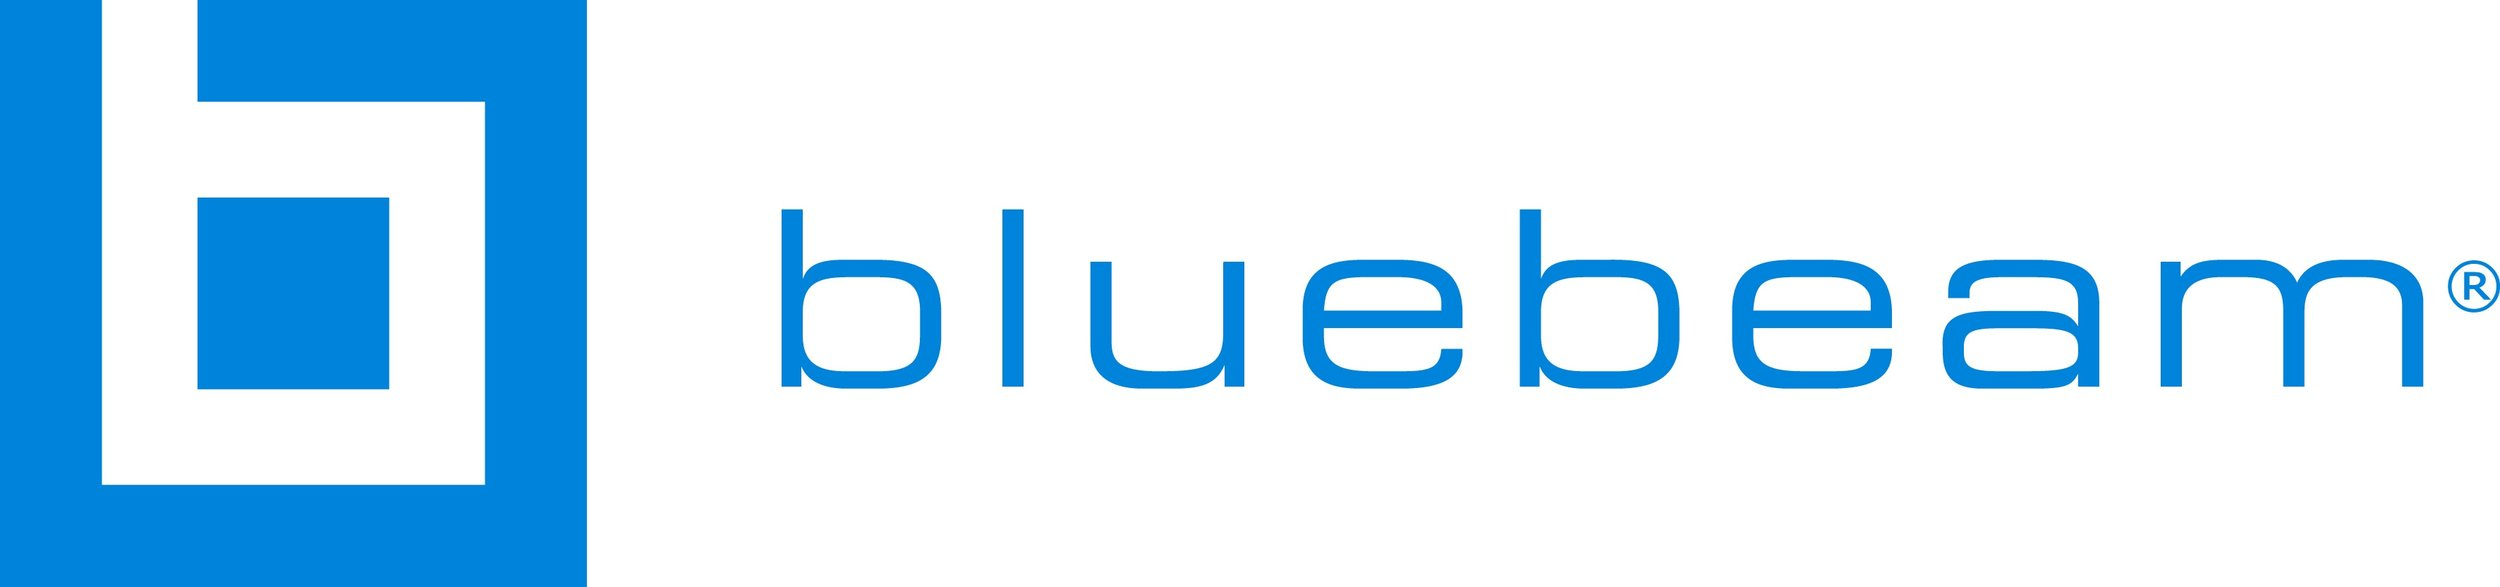 Bluebeam-logo-horizontal-blue-300dpi.jpeg